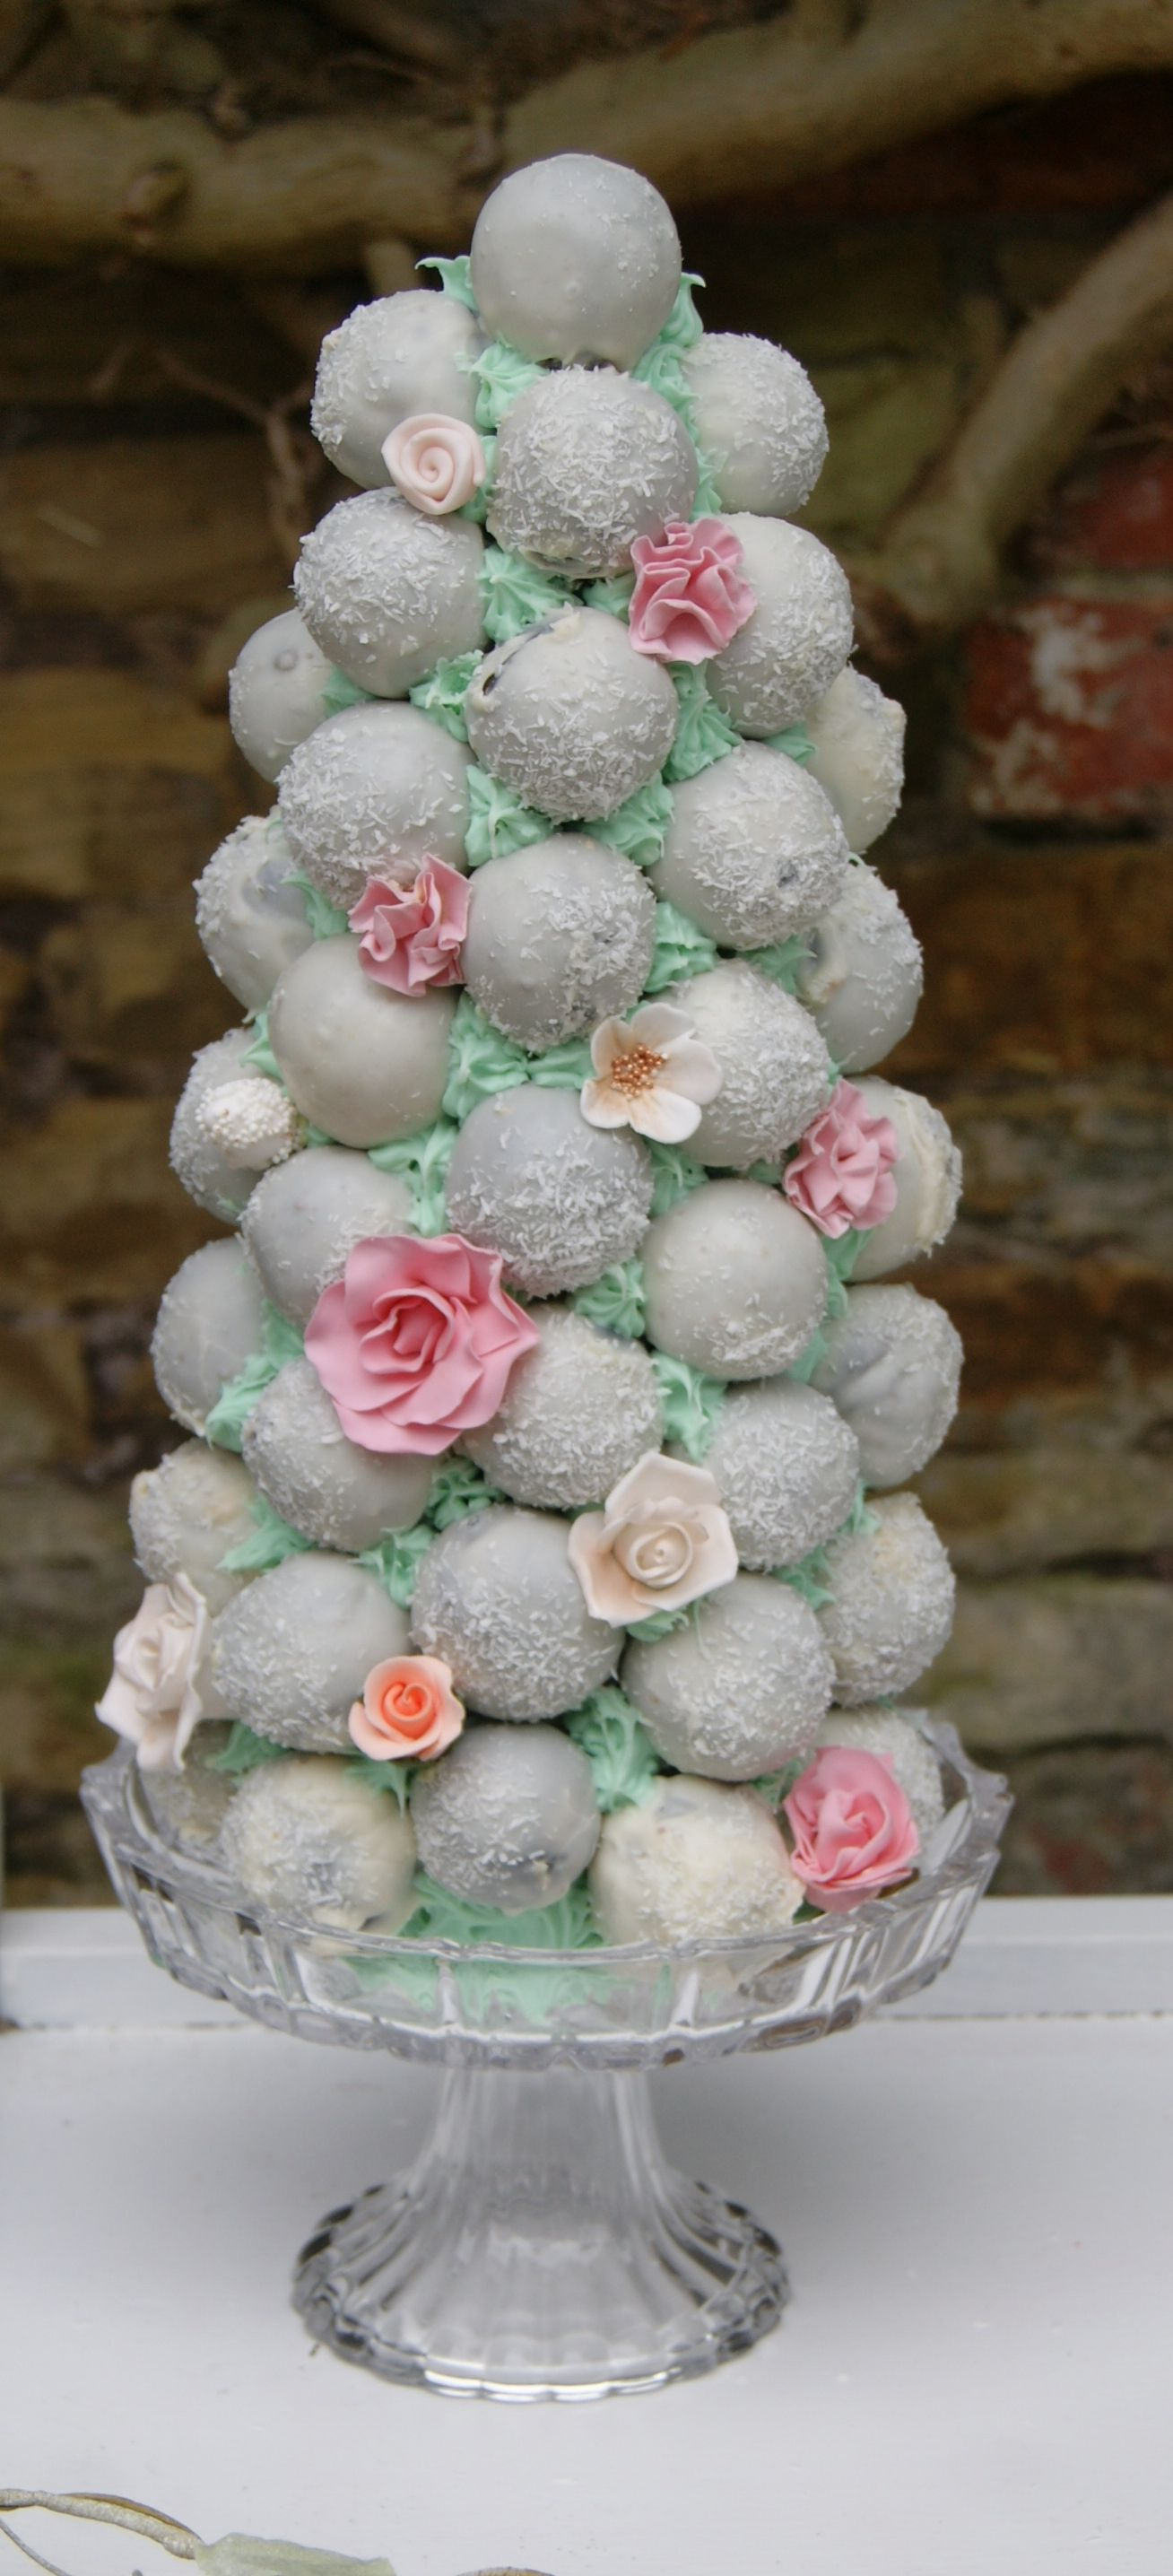 cake pop ideas wedding shower%0A Cake pop Tower by The Whimsical Cake Company in The UK